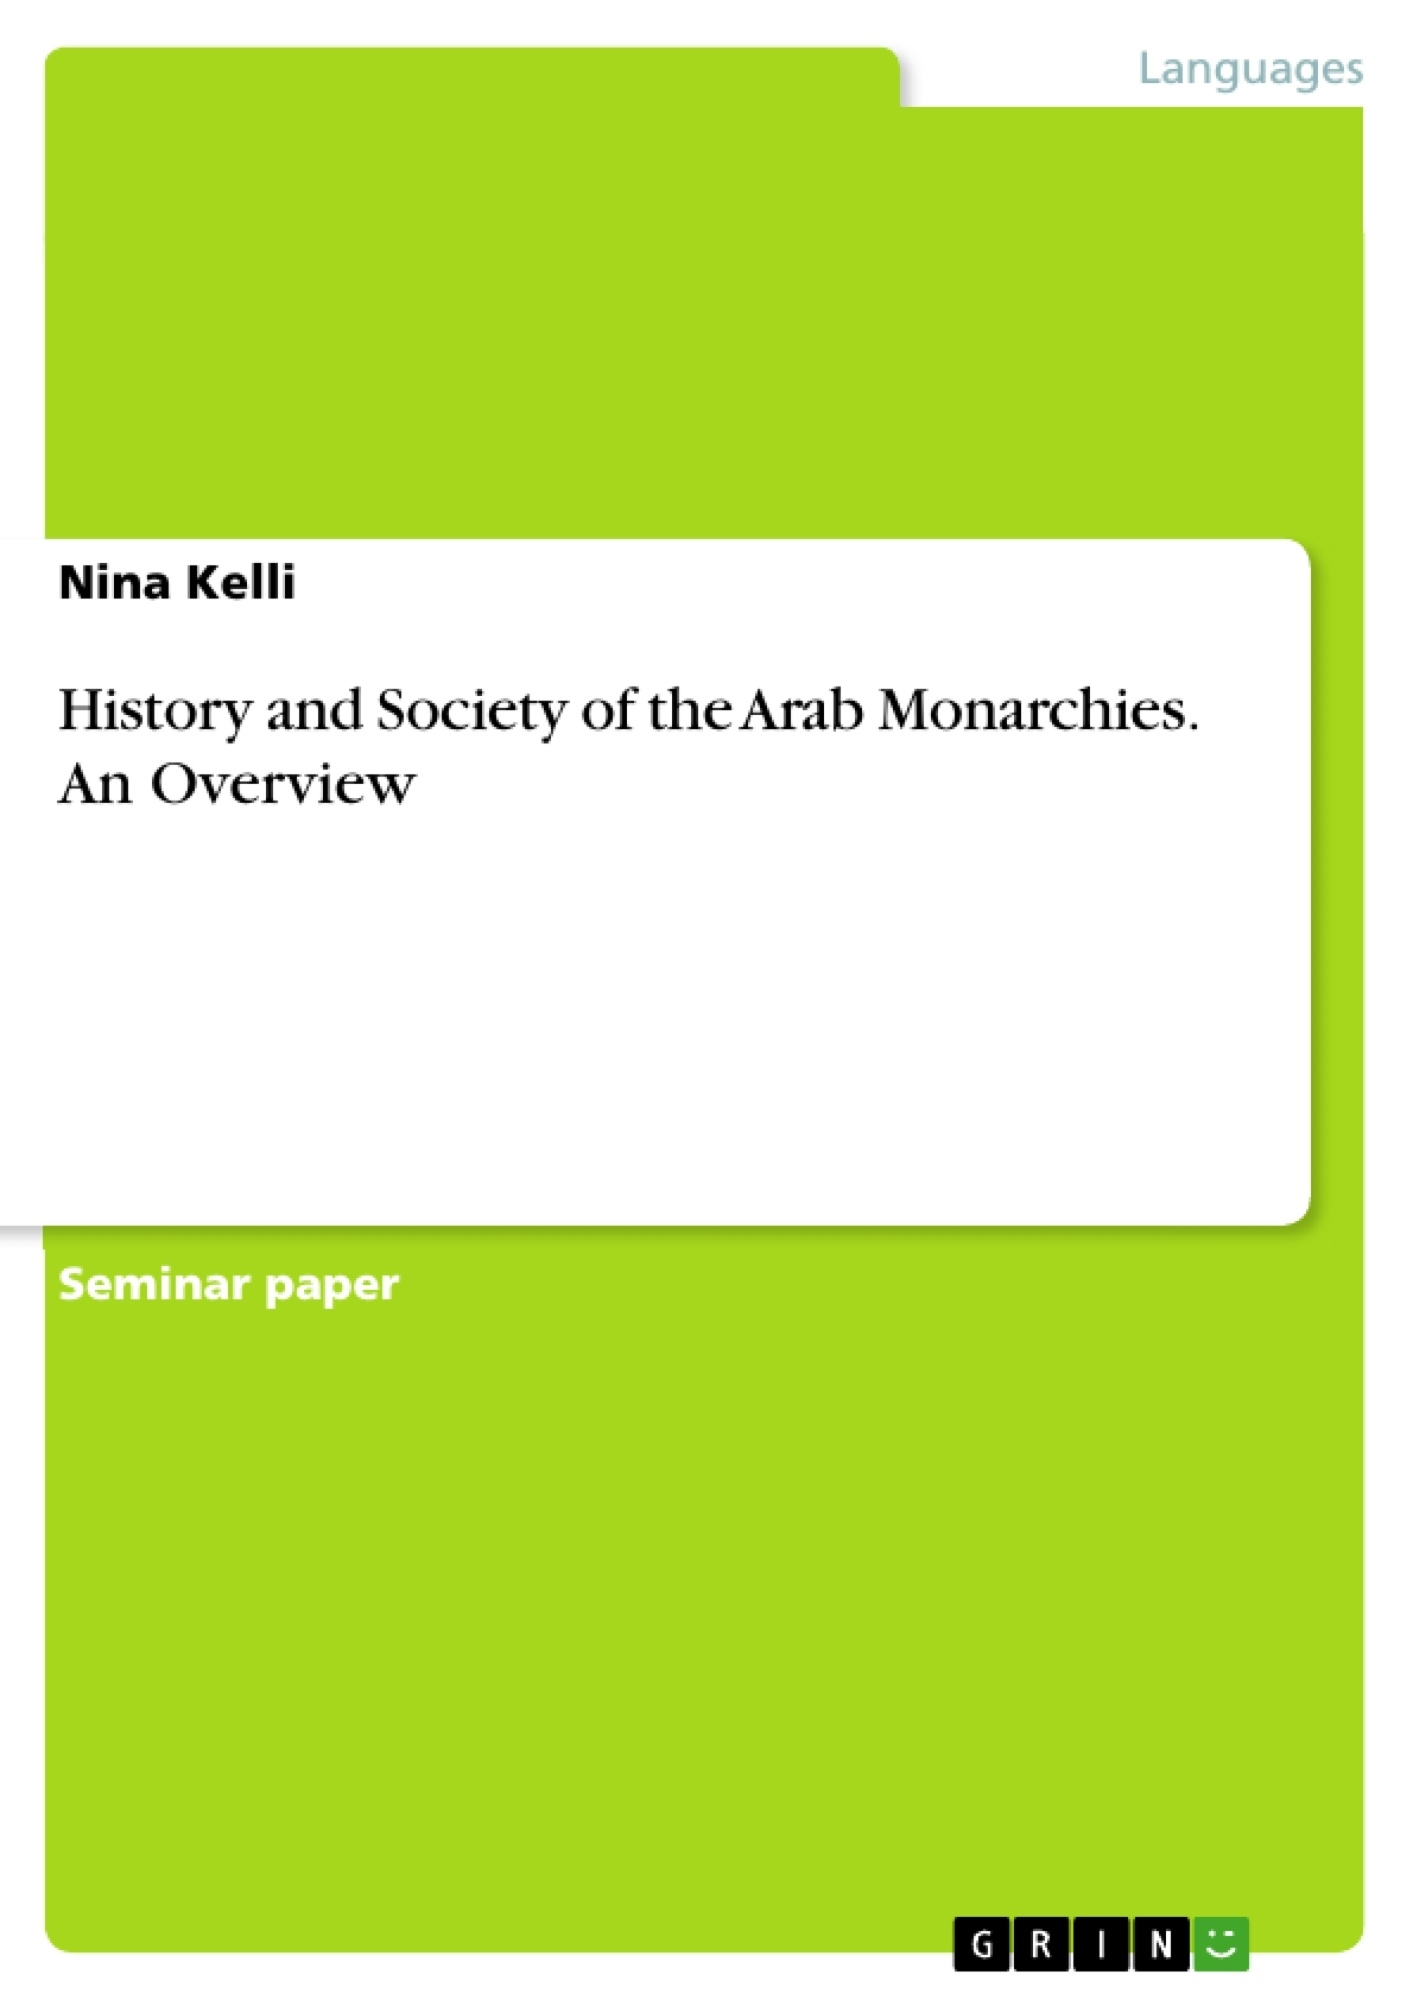 Title: History and Society of the Arab Monarchies. An Overview